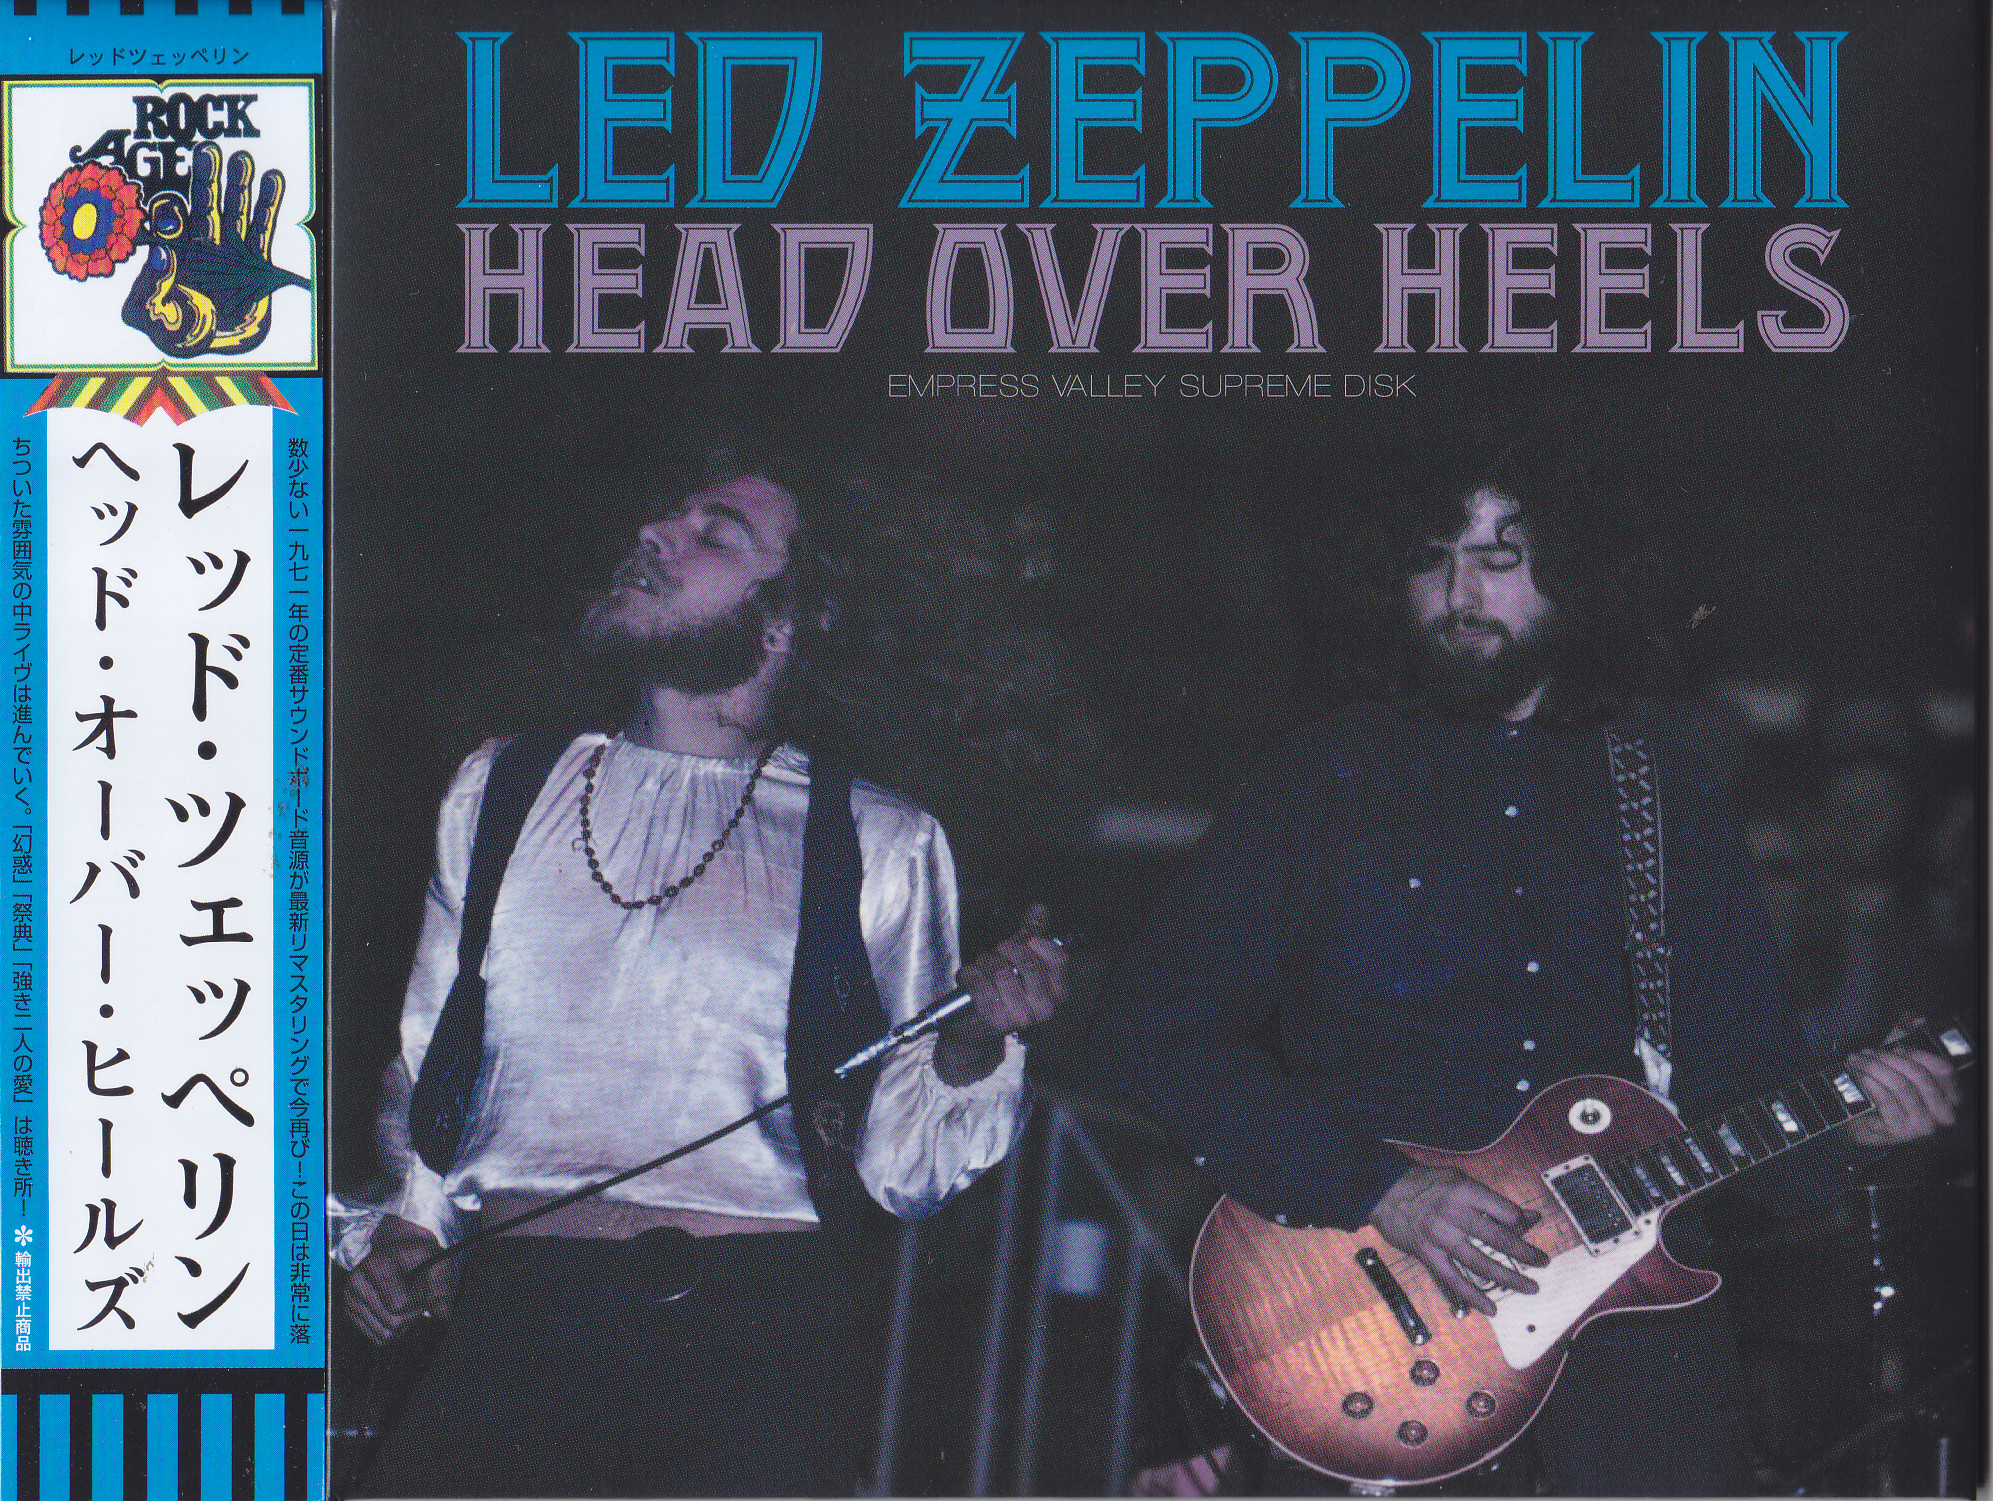 Led Zeppelin / Head Over Heels / 2CD Digipak Wx OBI Strip – GiGinJapan